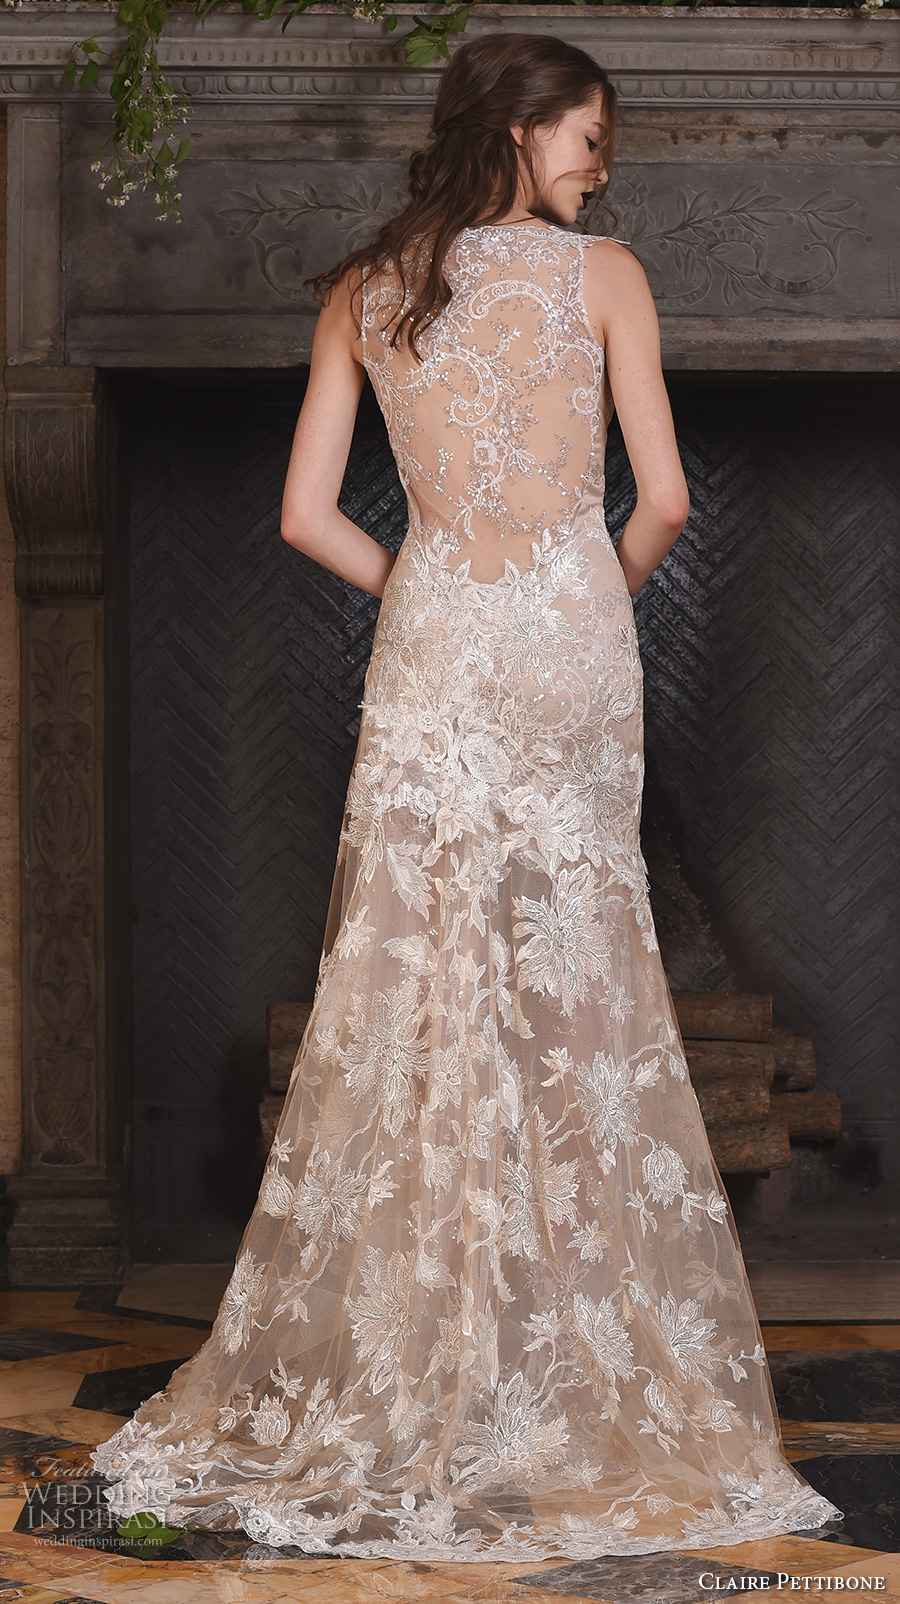 claire pettibone fall 2017 bridal sleeveless strap v neck full embellishment beautiful ivory color fit and flare mermaid wedding dress illusion lace back sweep train (noel) bv